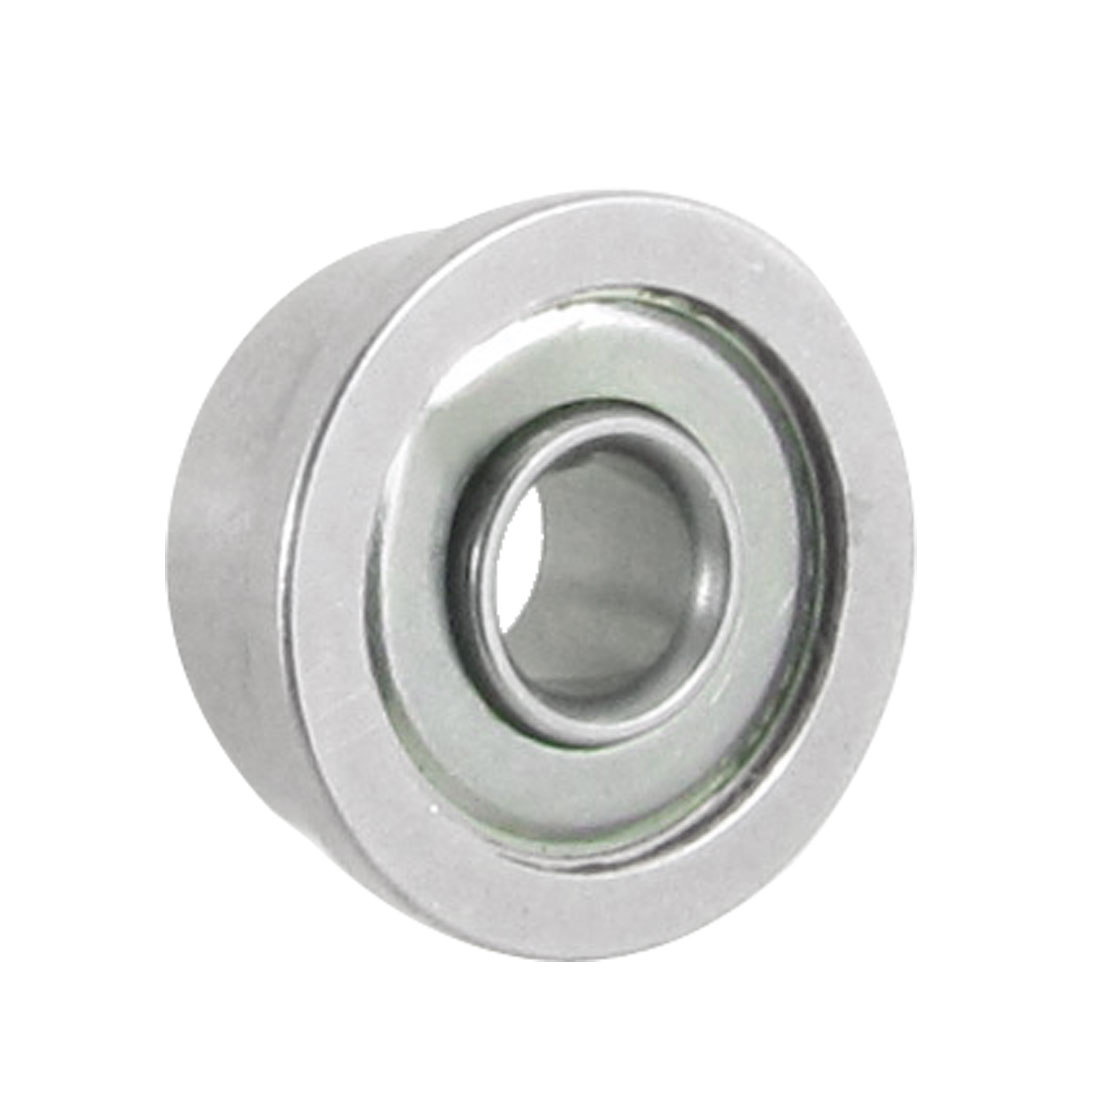 3mm x 8mm x 4mm Radial Sealed Deep Groove Flanged Ball Bearing Silver Tone